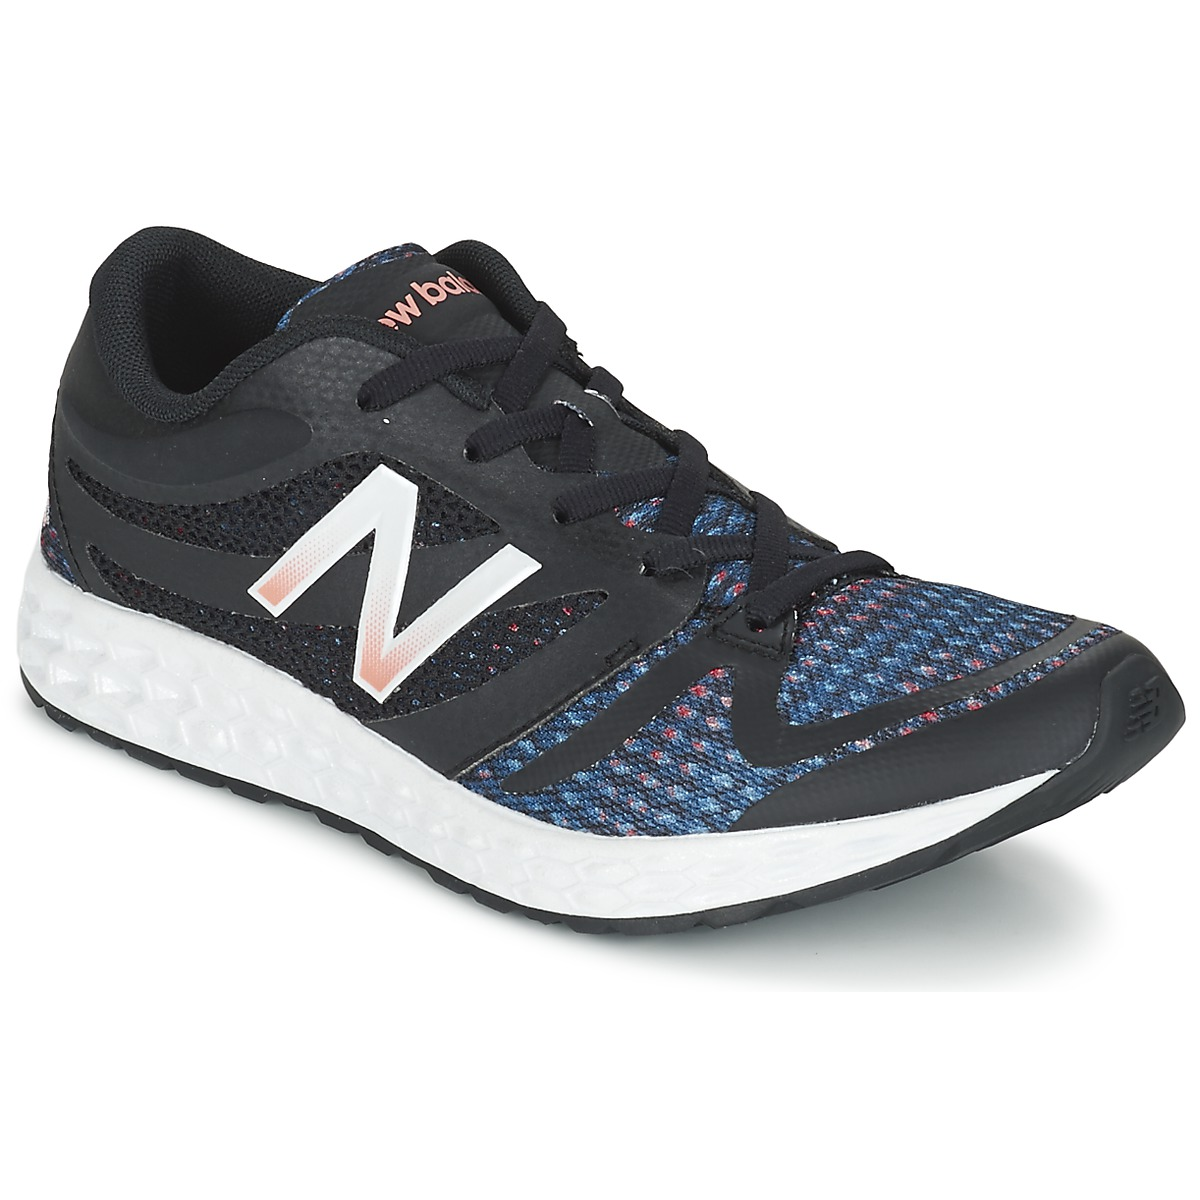 188c411f2dee85 high-quality New Balance WX822 Black Shoes Fitness shoes Women ...